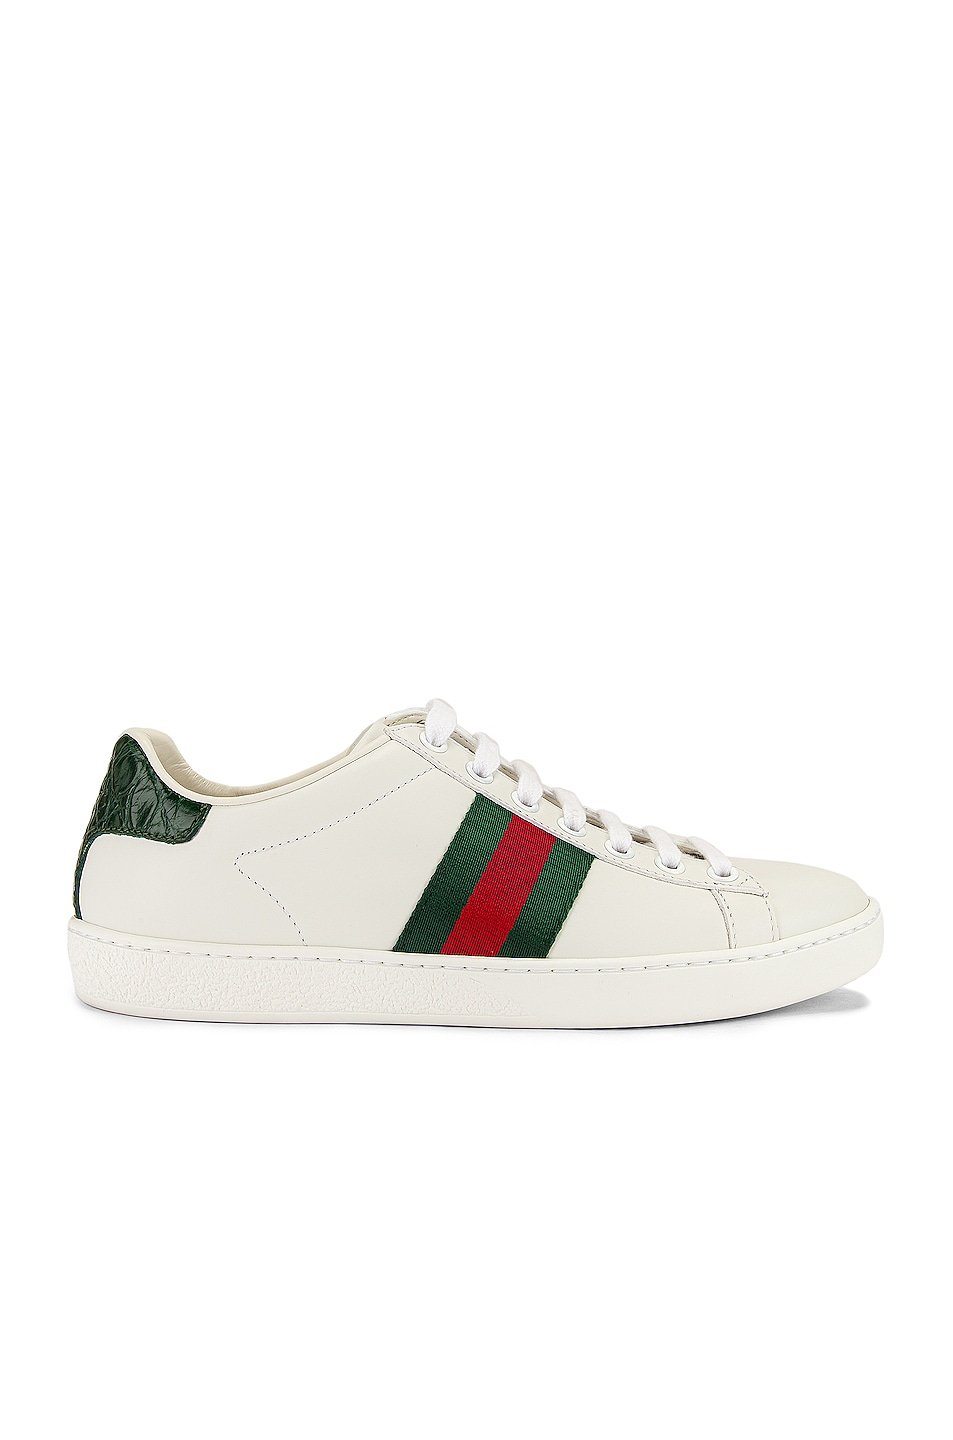 Image 1 of Gucci New Ace Basic Sneakers in White & Green